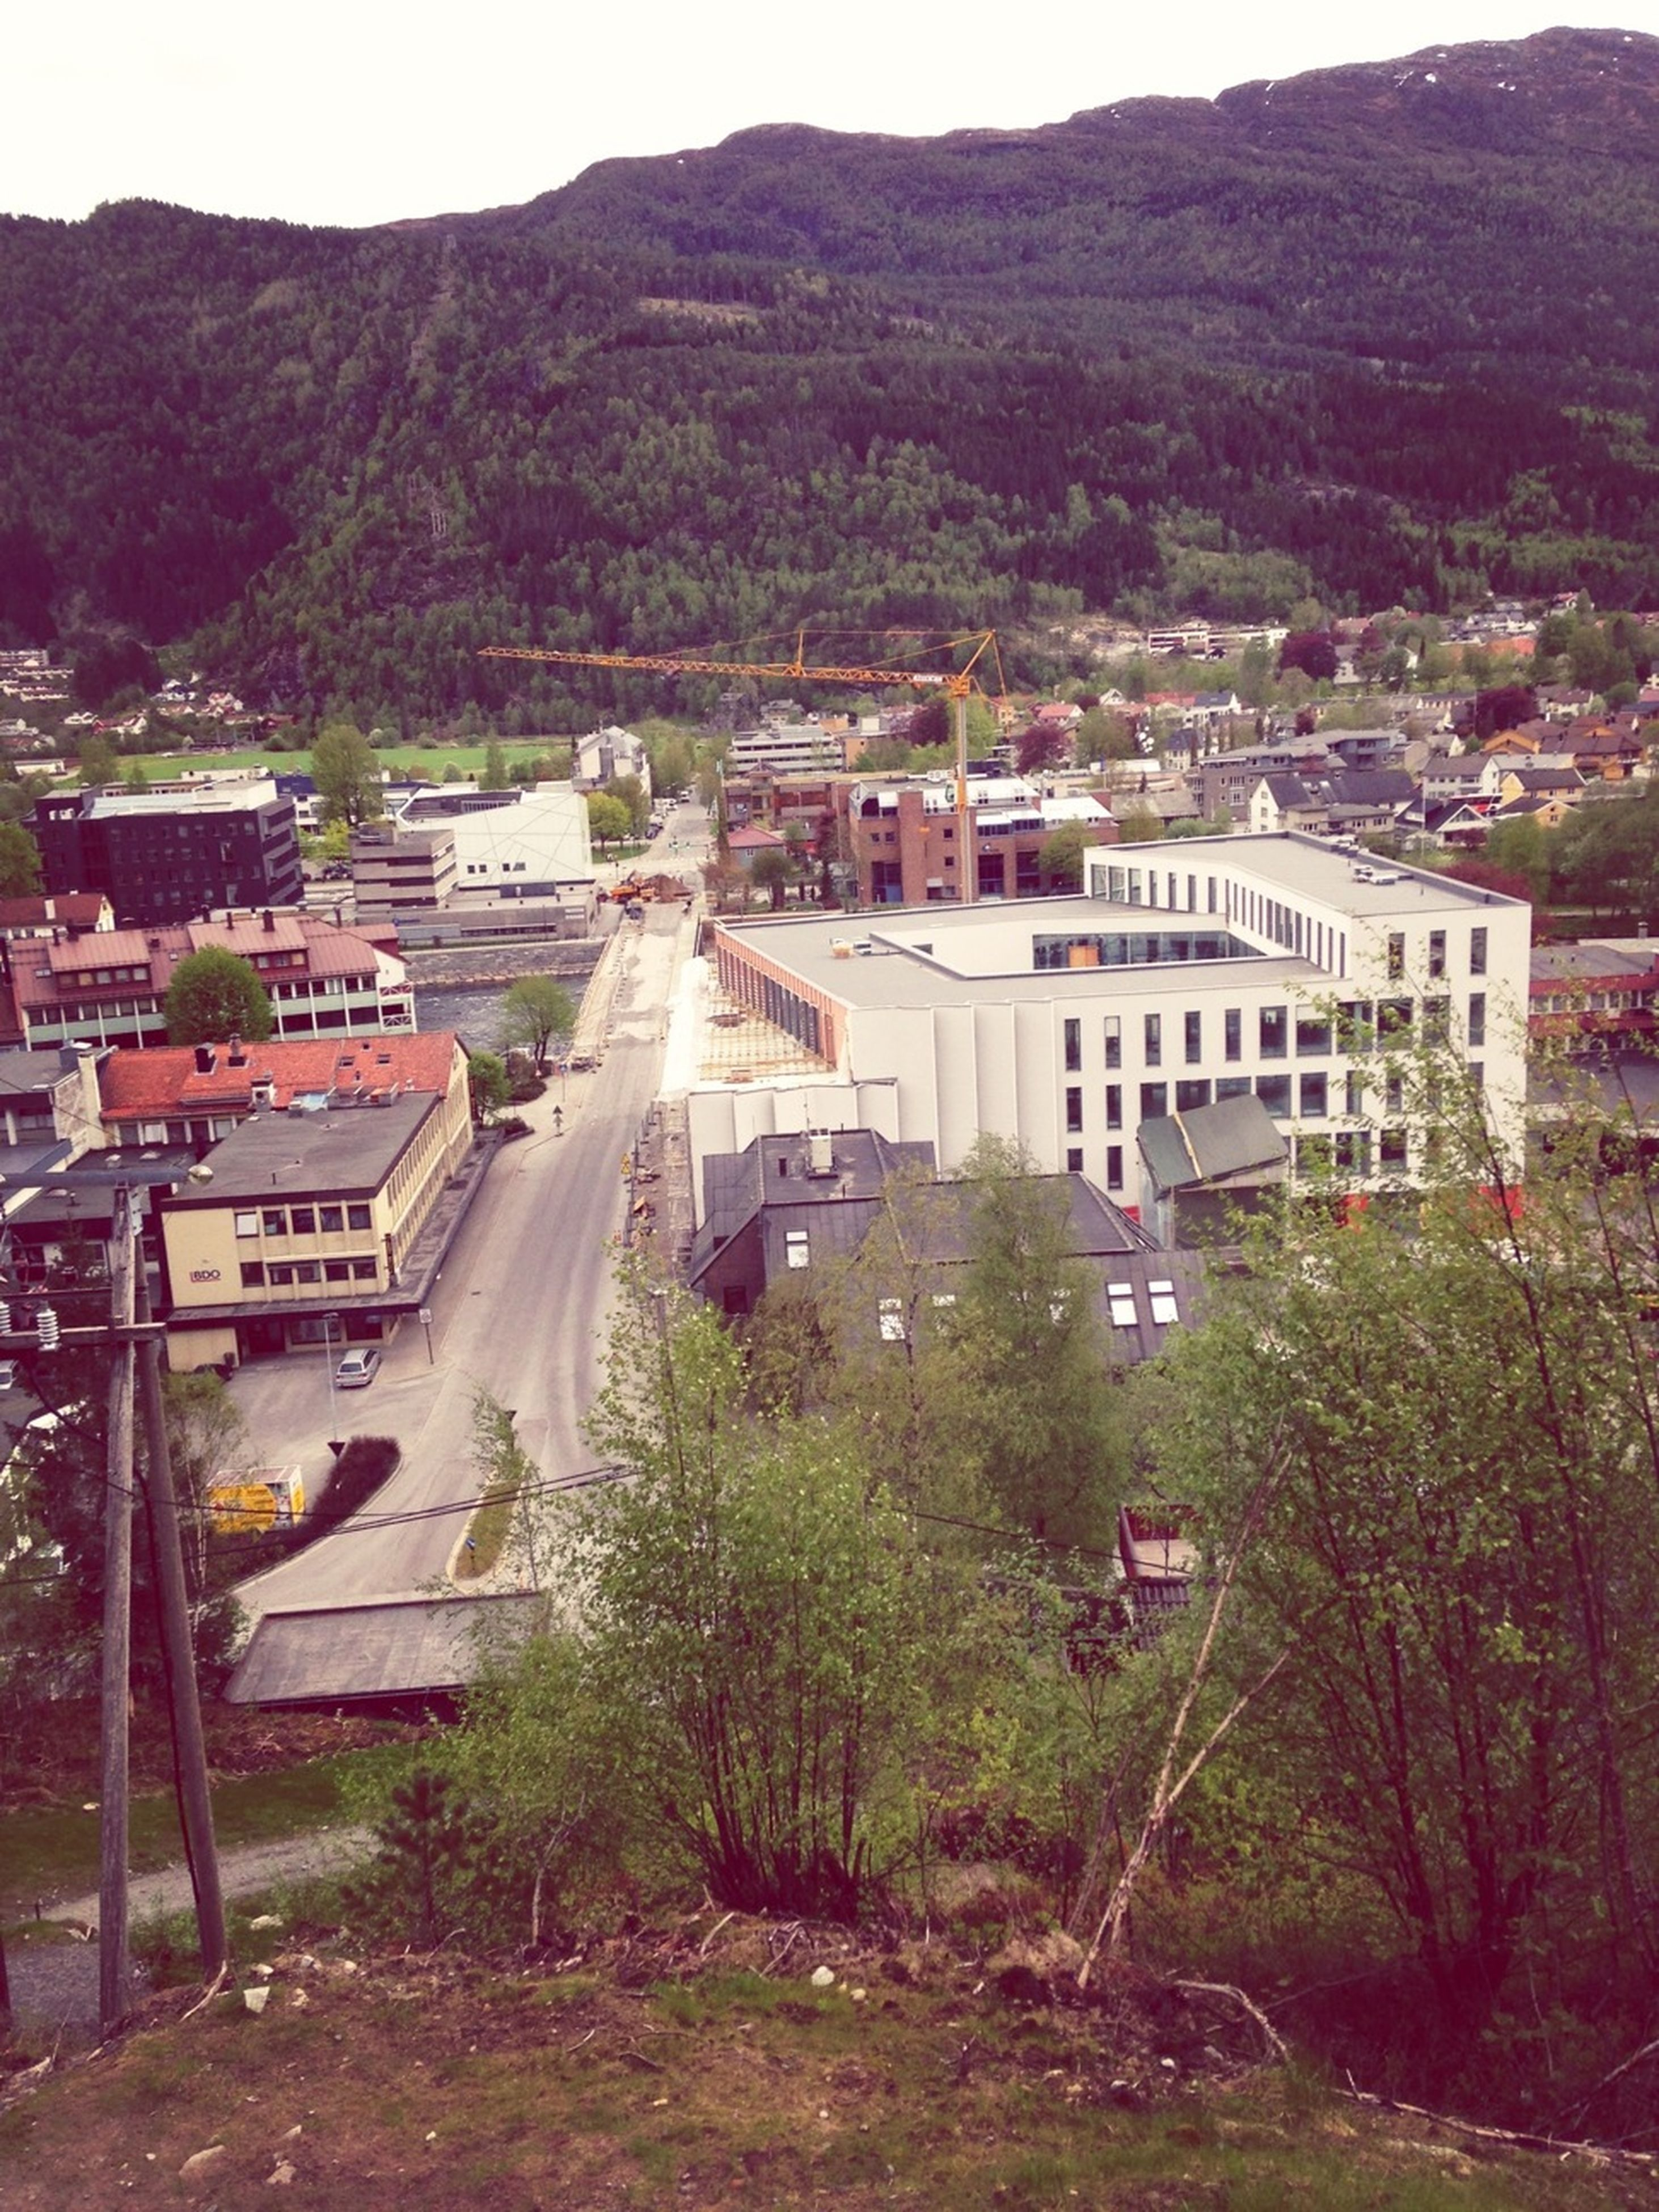 building exterior, mountain, architecture, built structure, tree, house, residential building, residential structure, high angle view, town, mountain range, residential district, road, street, townscape, city, outdoors, sky, landscape, village